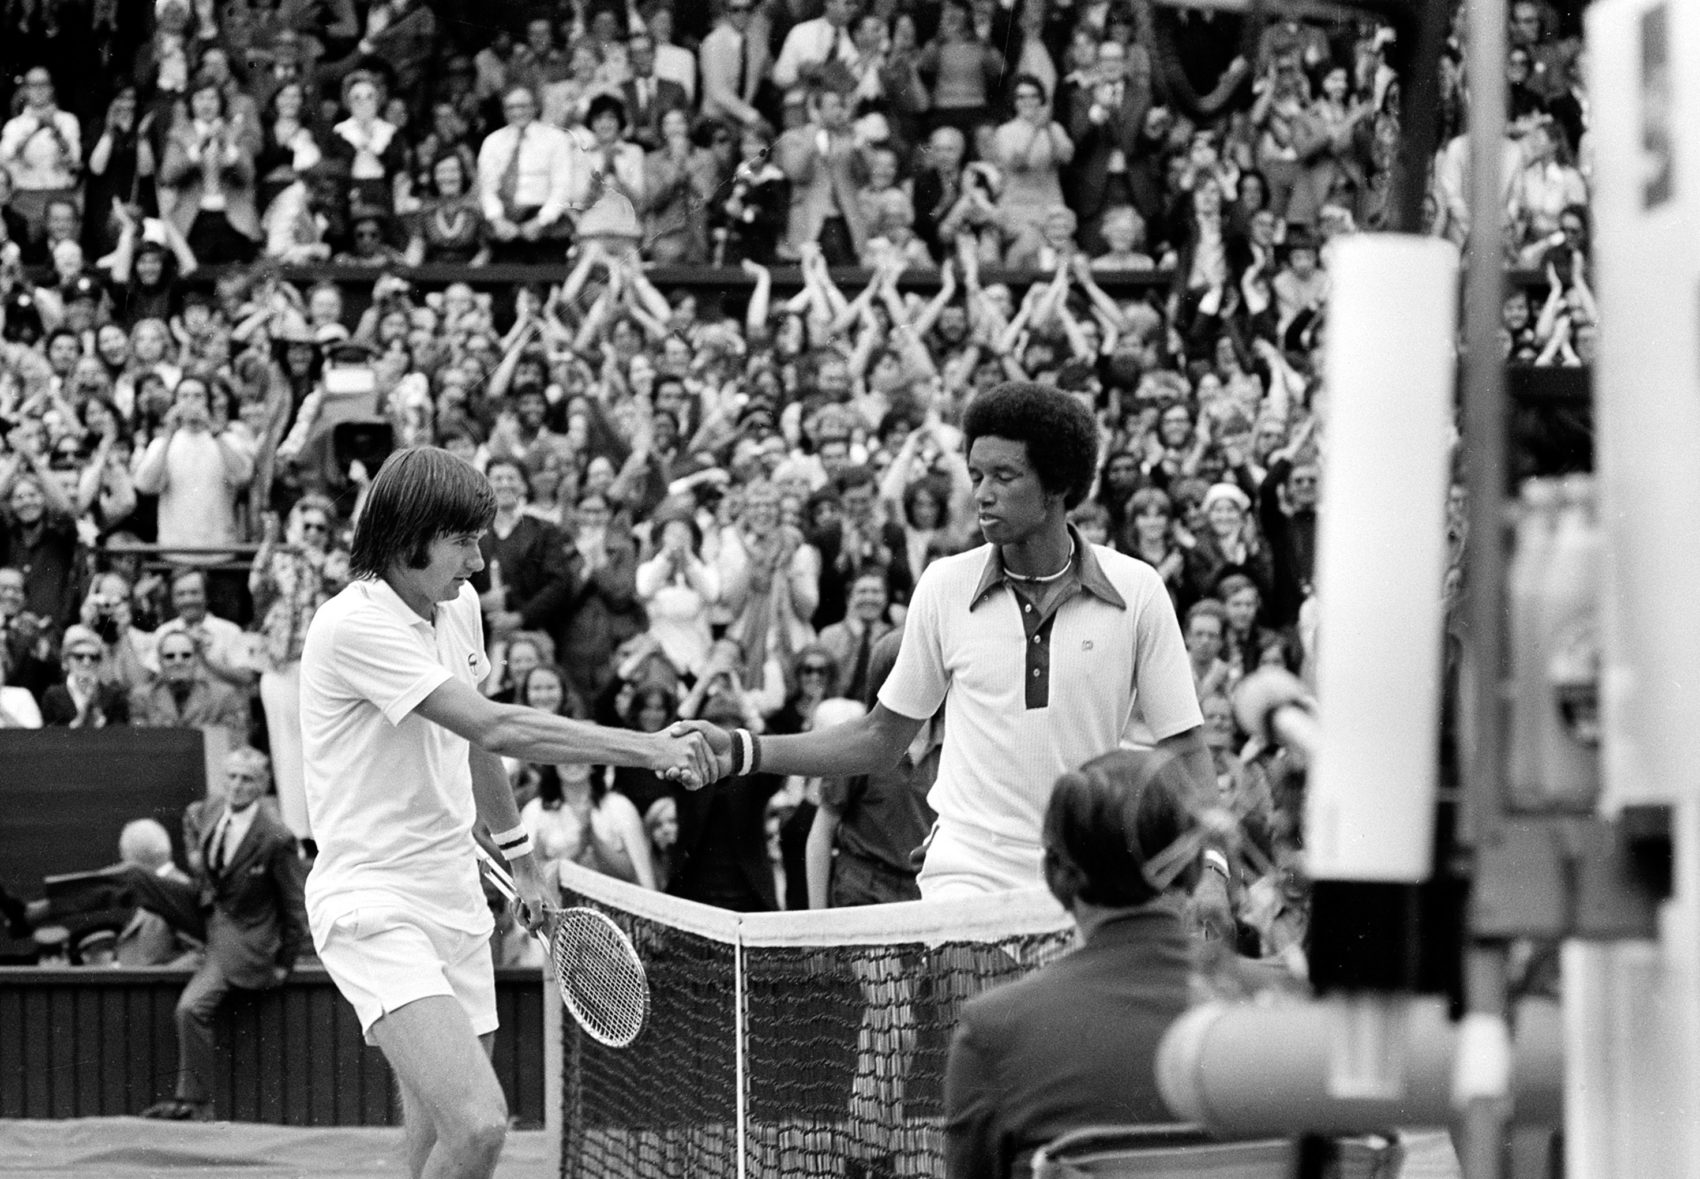 When Ashe's Feud With Connors Took Centre Court At Wimbledon